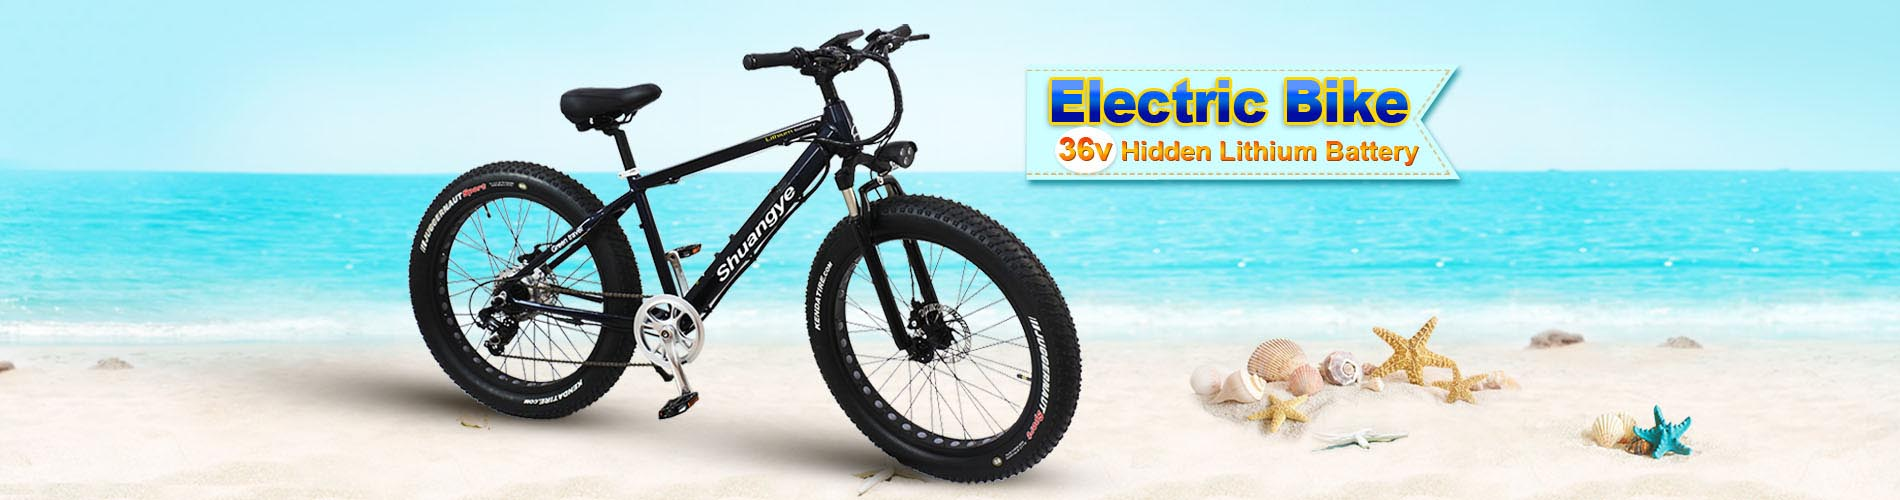 750W motor fat tire motorized bike 21 speed